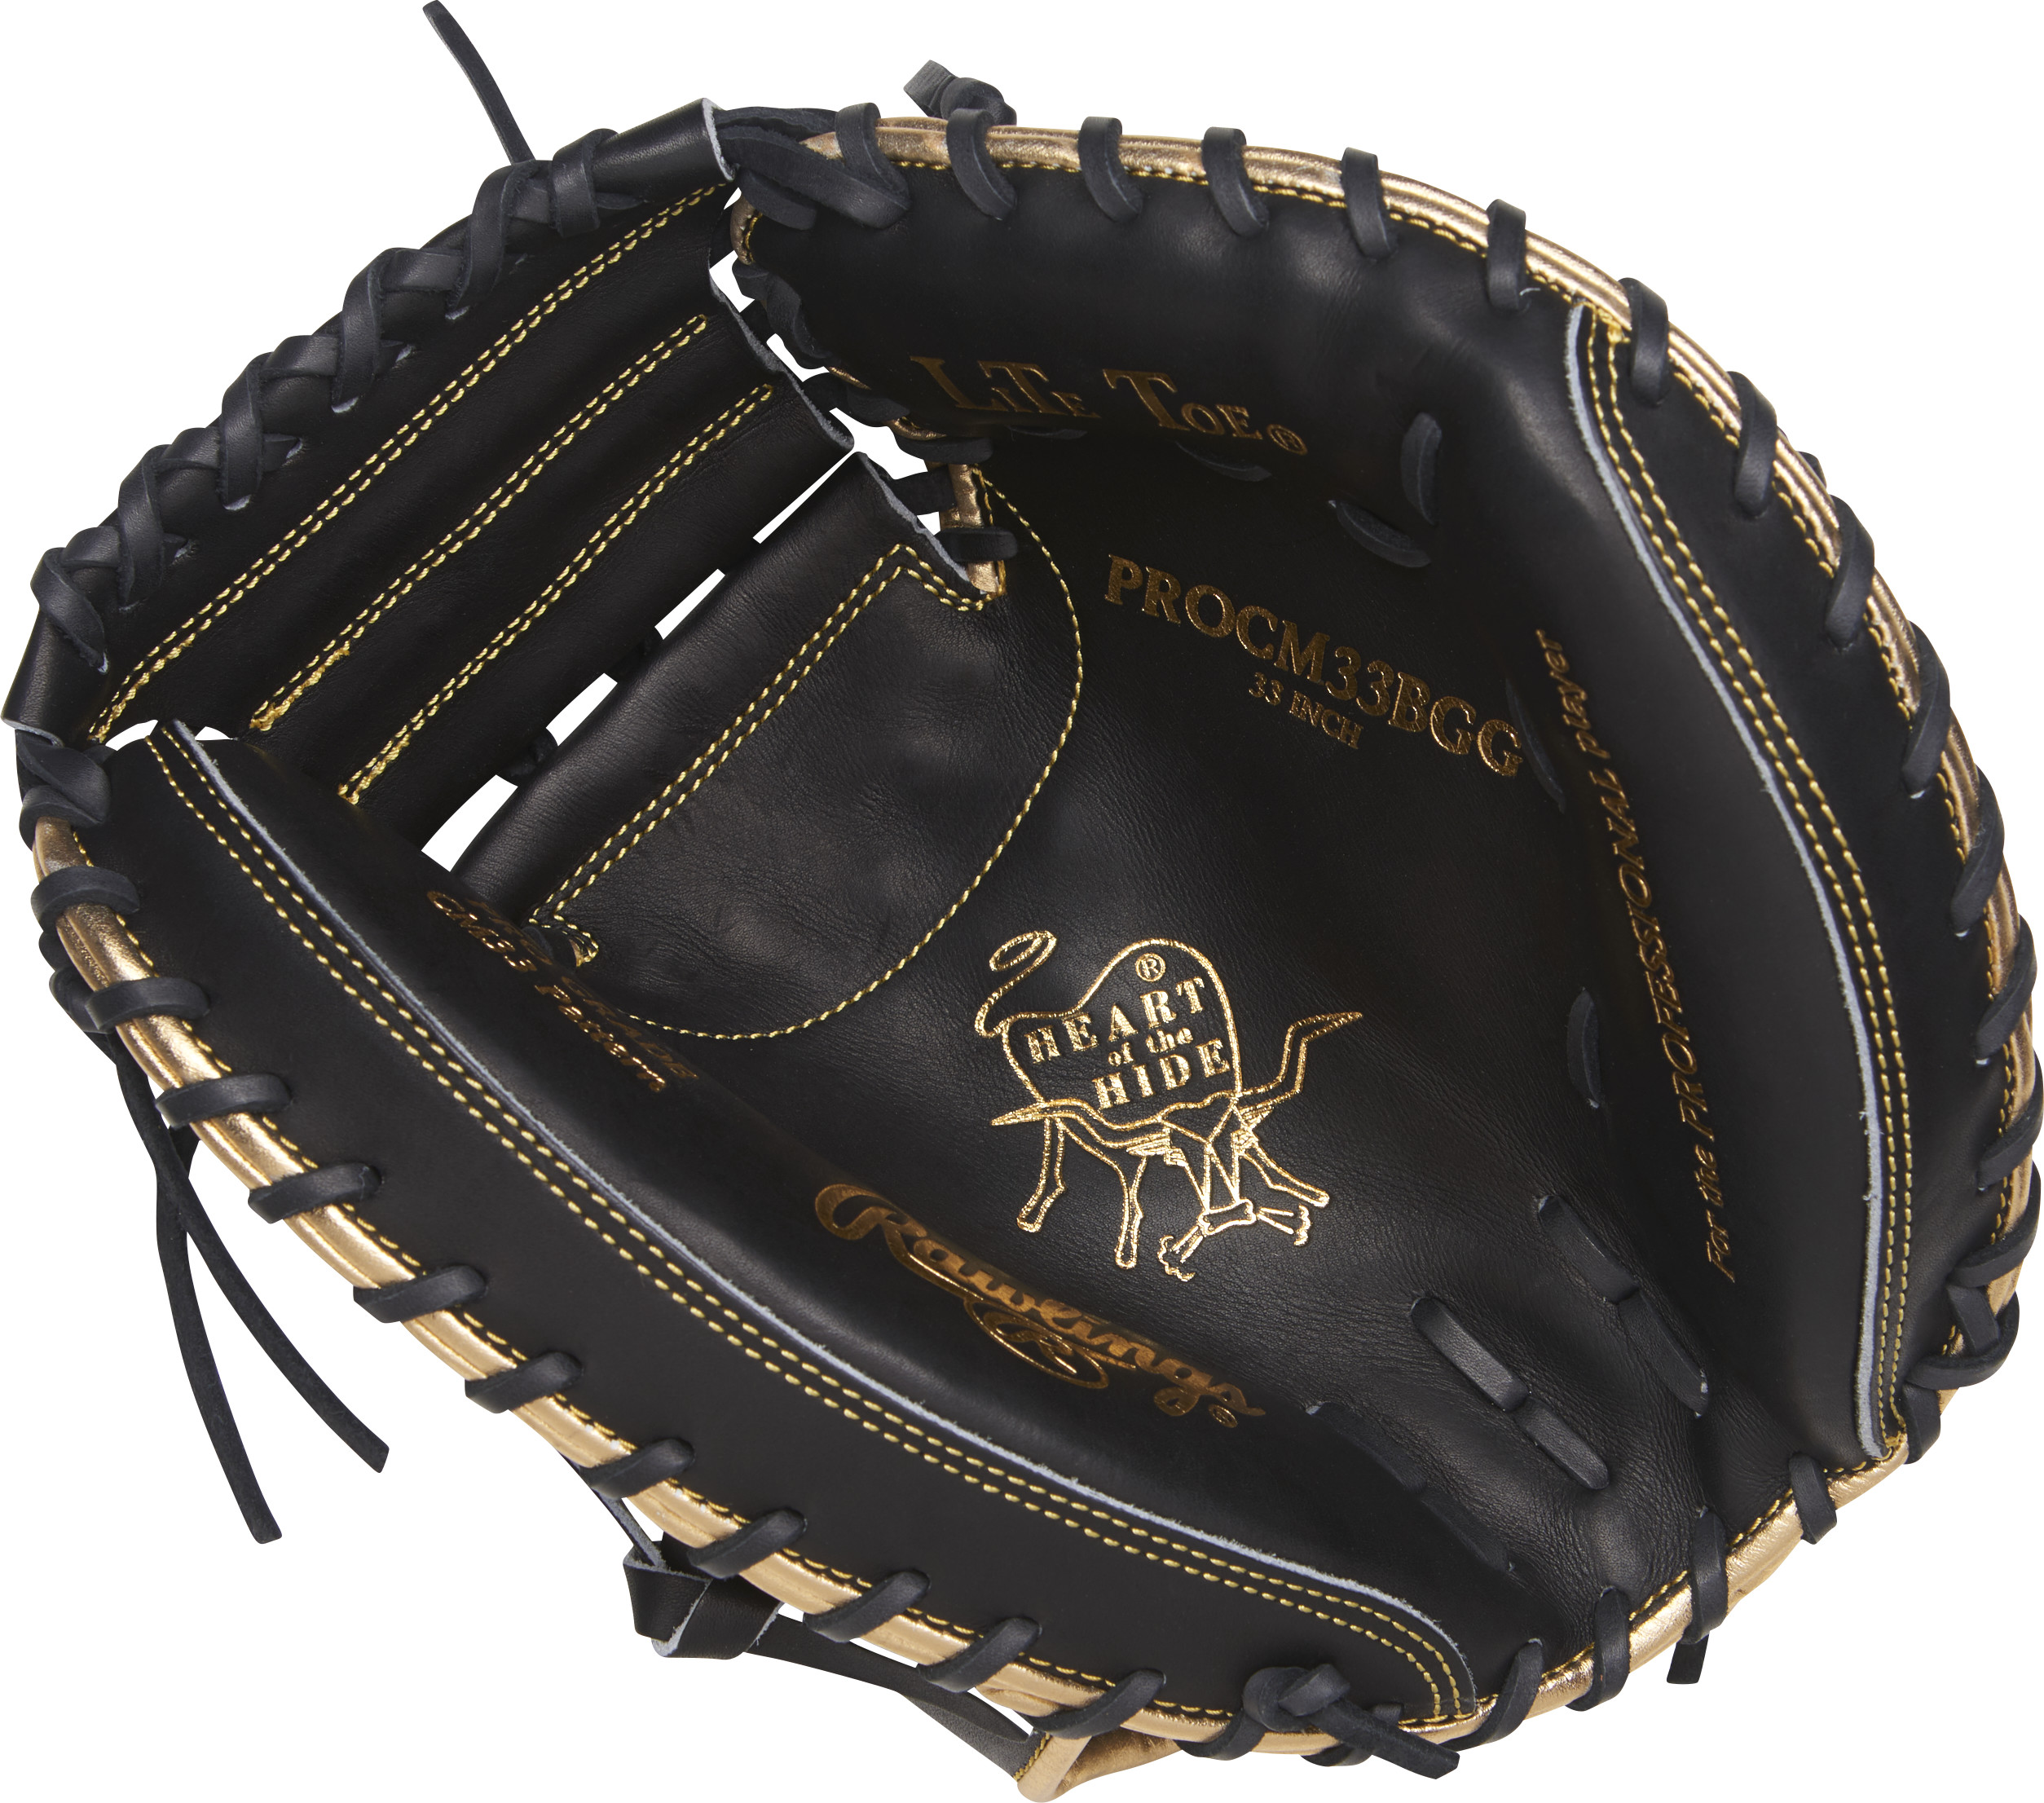 http://www.bestbatdeals.com/images/gloves/rawlings/PROCM33BGG-1.jpg